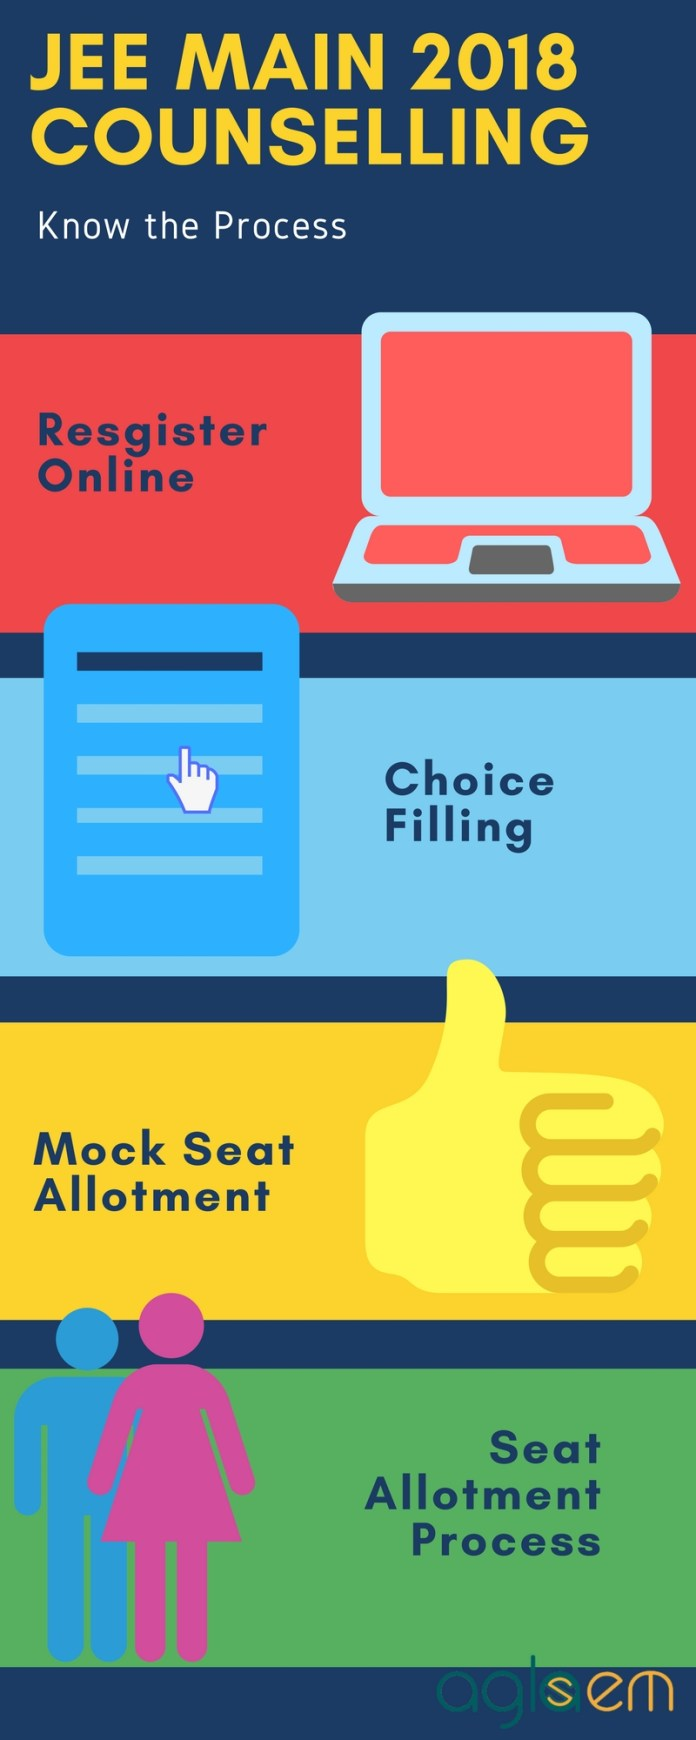 JEE Main 2018 Counselling